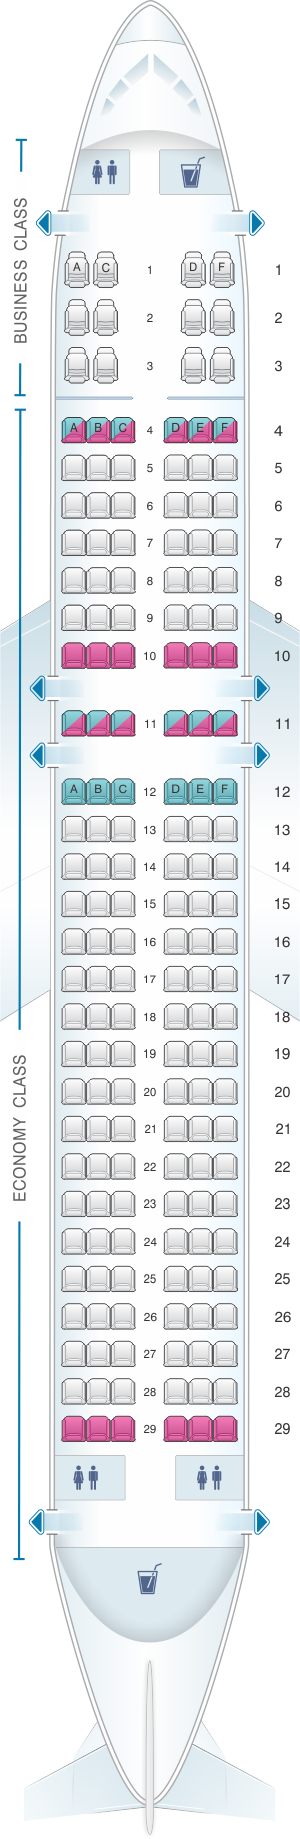 Seat map for Brussels Airlines Airbus A320